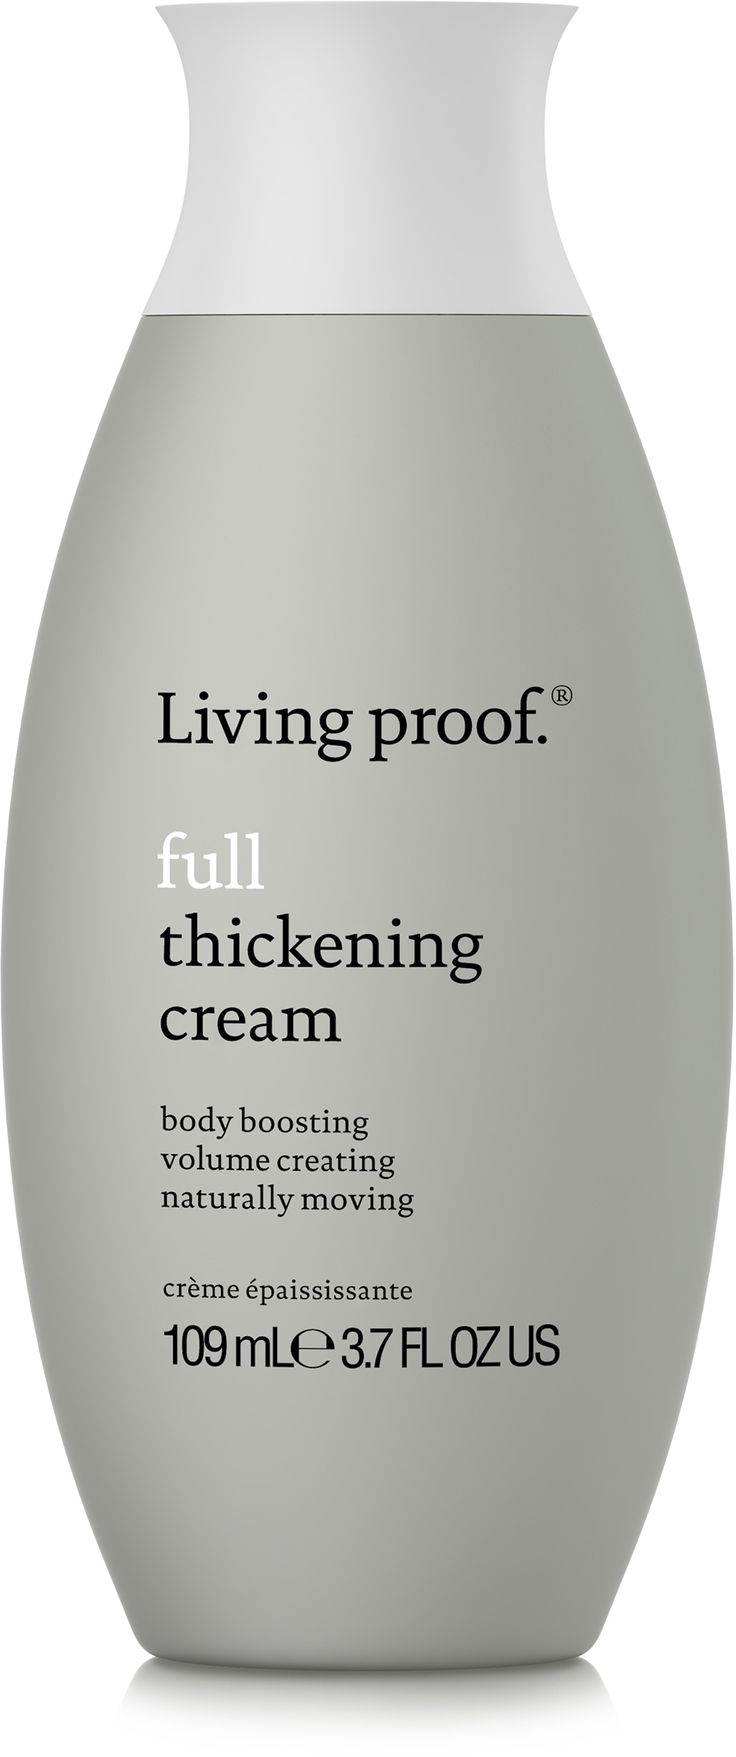 Thanks to a slew of scientific advances, these volume boosters have major new benefits.